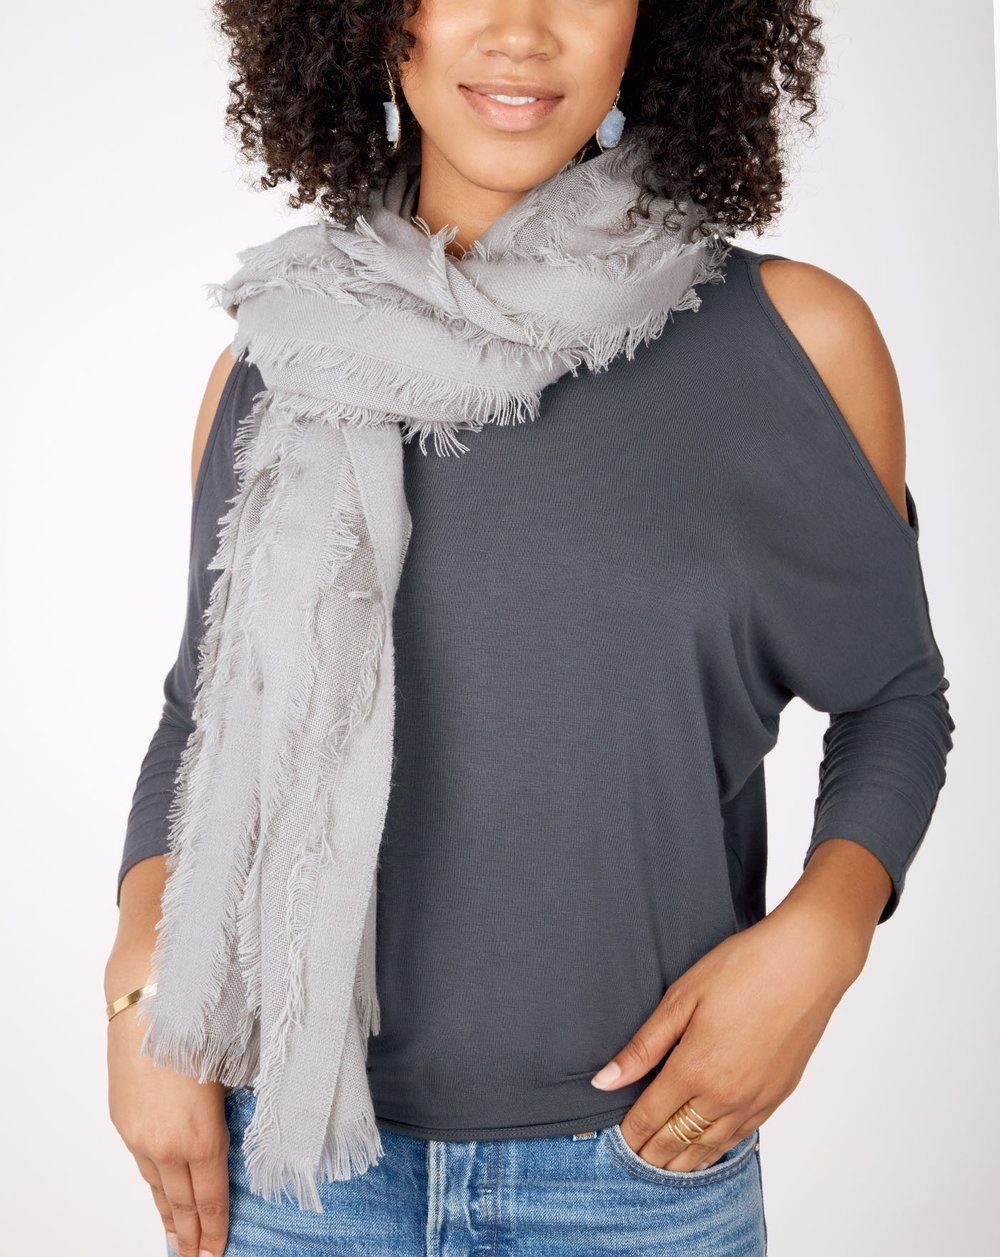 1. The St. Germain Scarf - It's starting to get cooler which means we can finally reach for our new favorite scarf, the St. Germain! With a subdued gray color and baby fringe, you can't go wrong. As the softest scarf we've ever felt, this is one fall staple we won't be without.